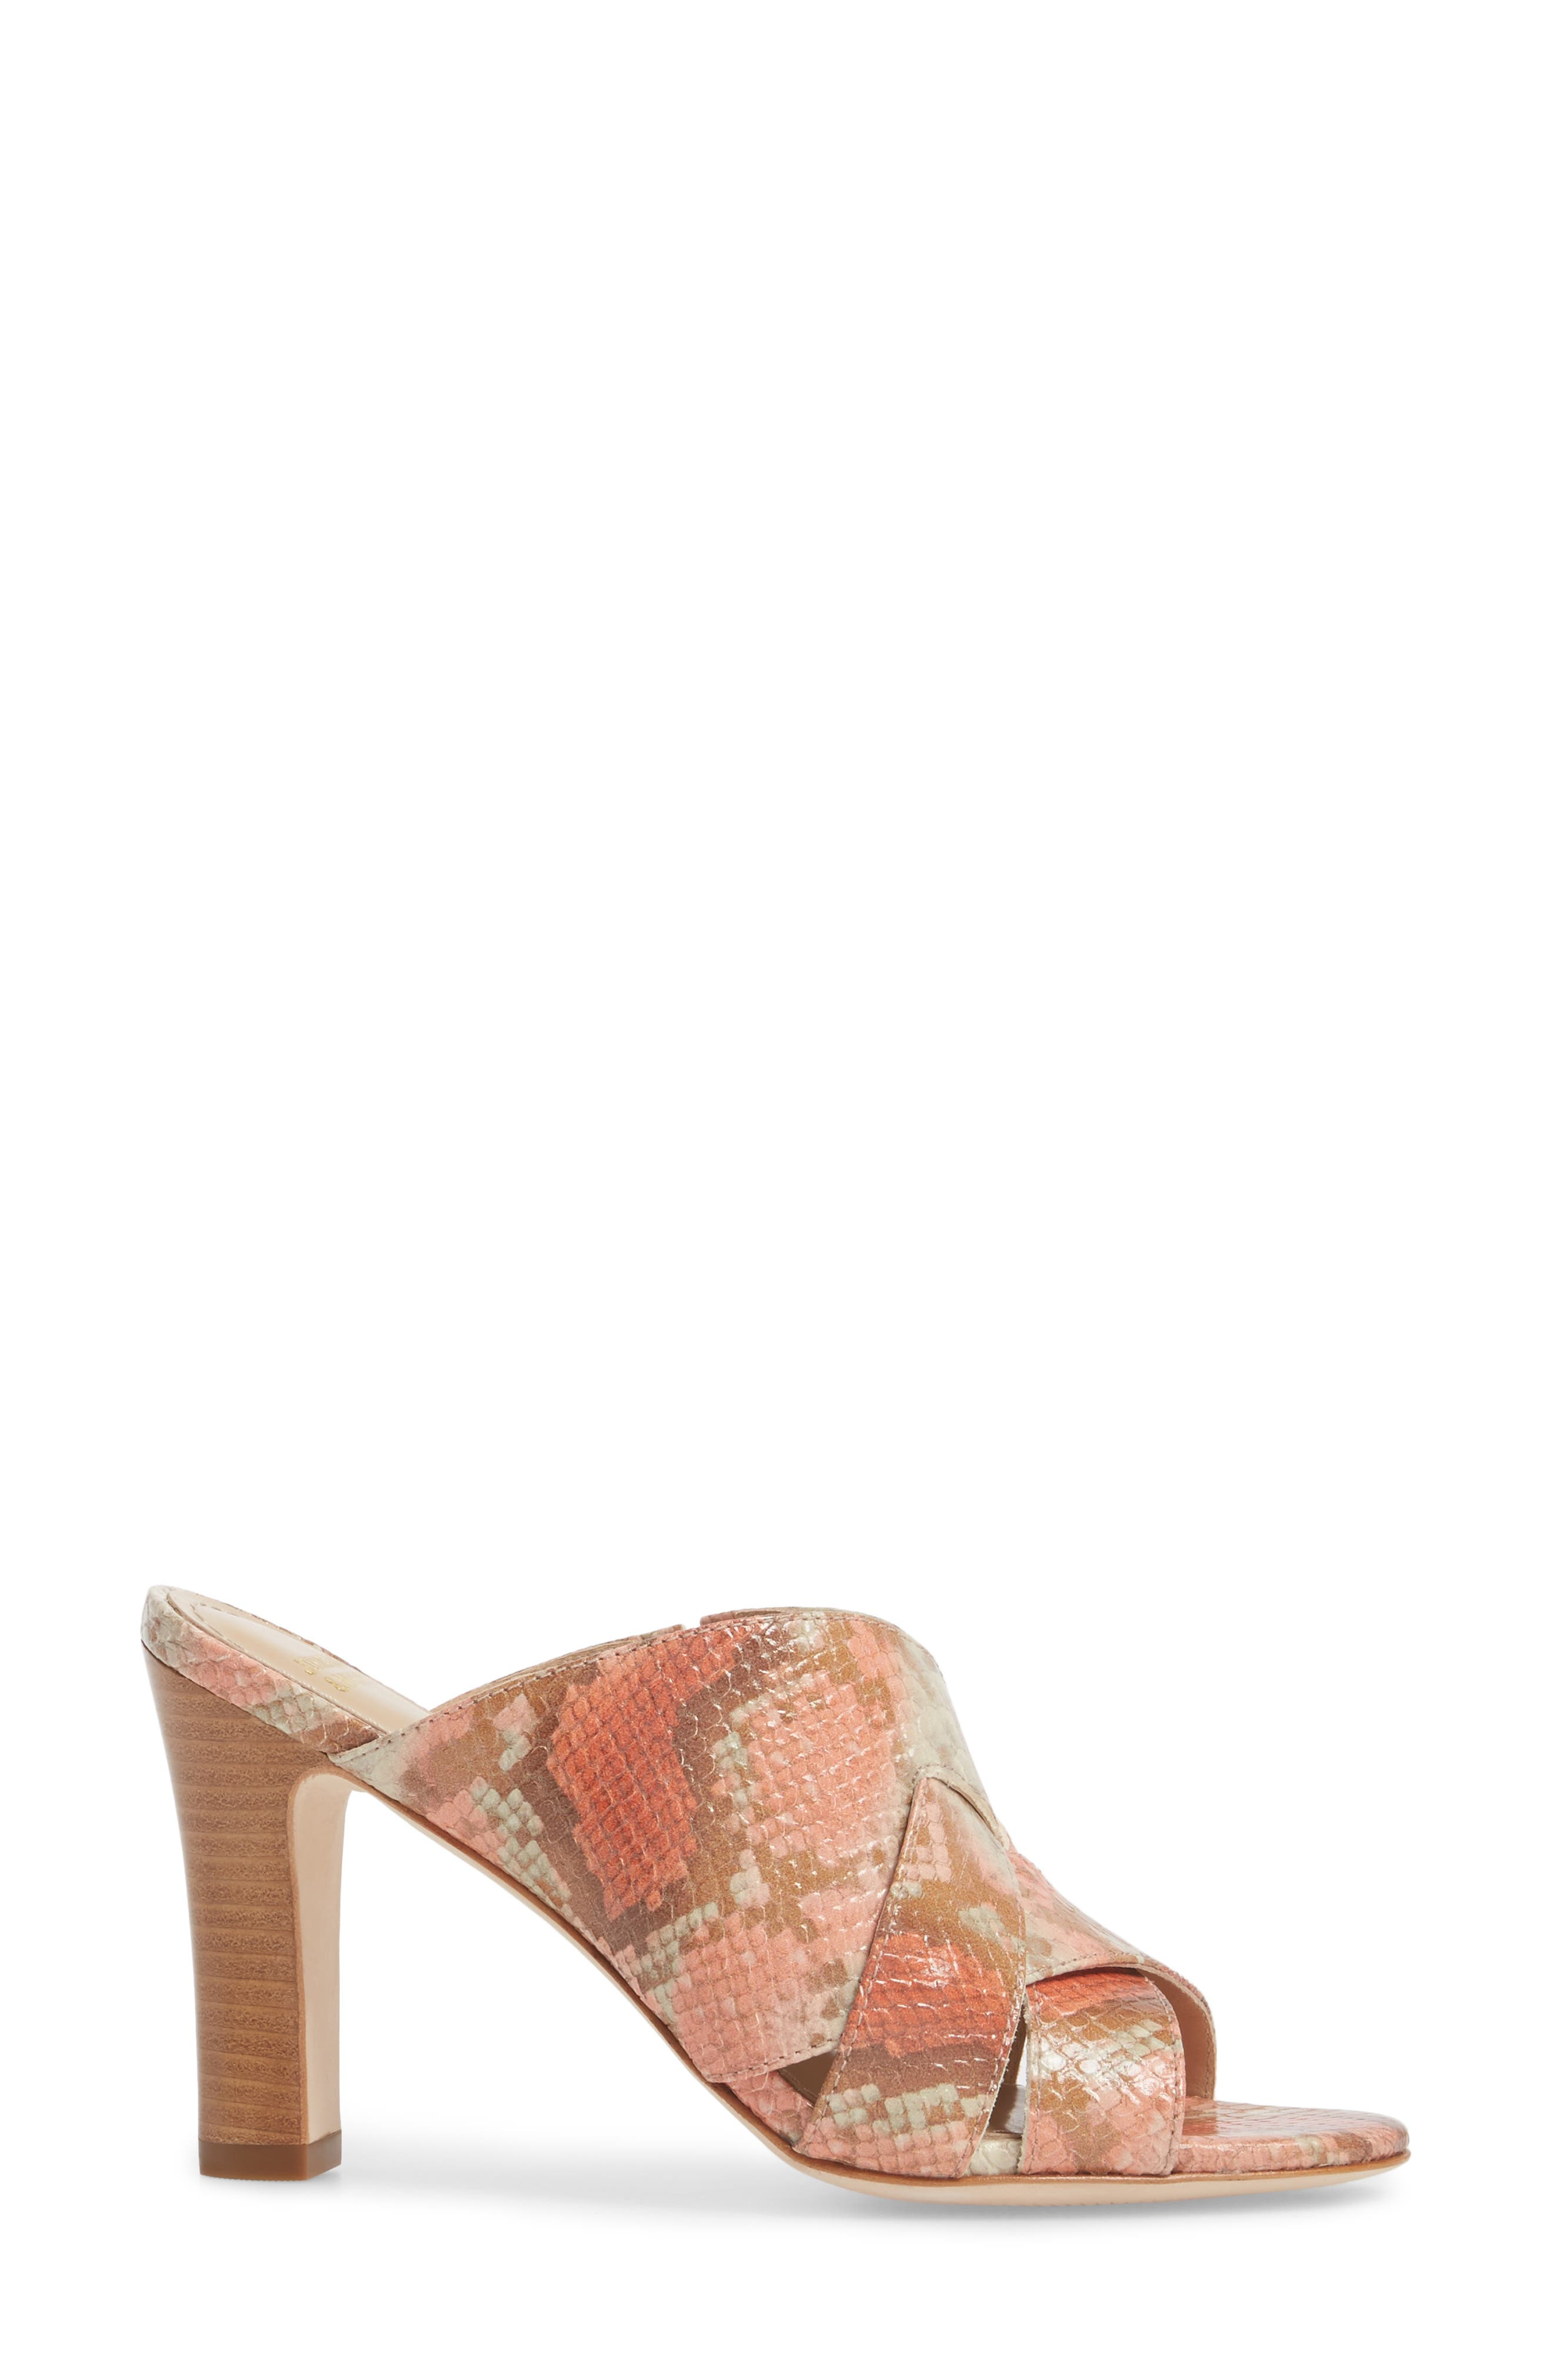 Carrie Mule Sandal,                             Alternate thumbnail 3, color,                             Coral Leather